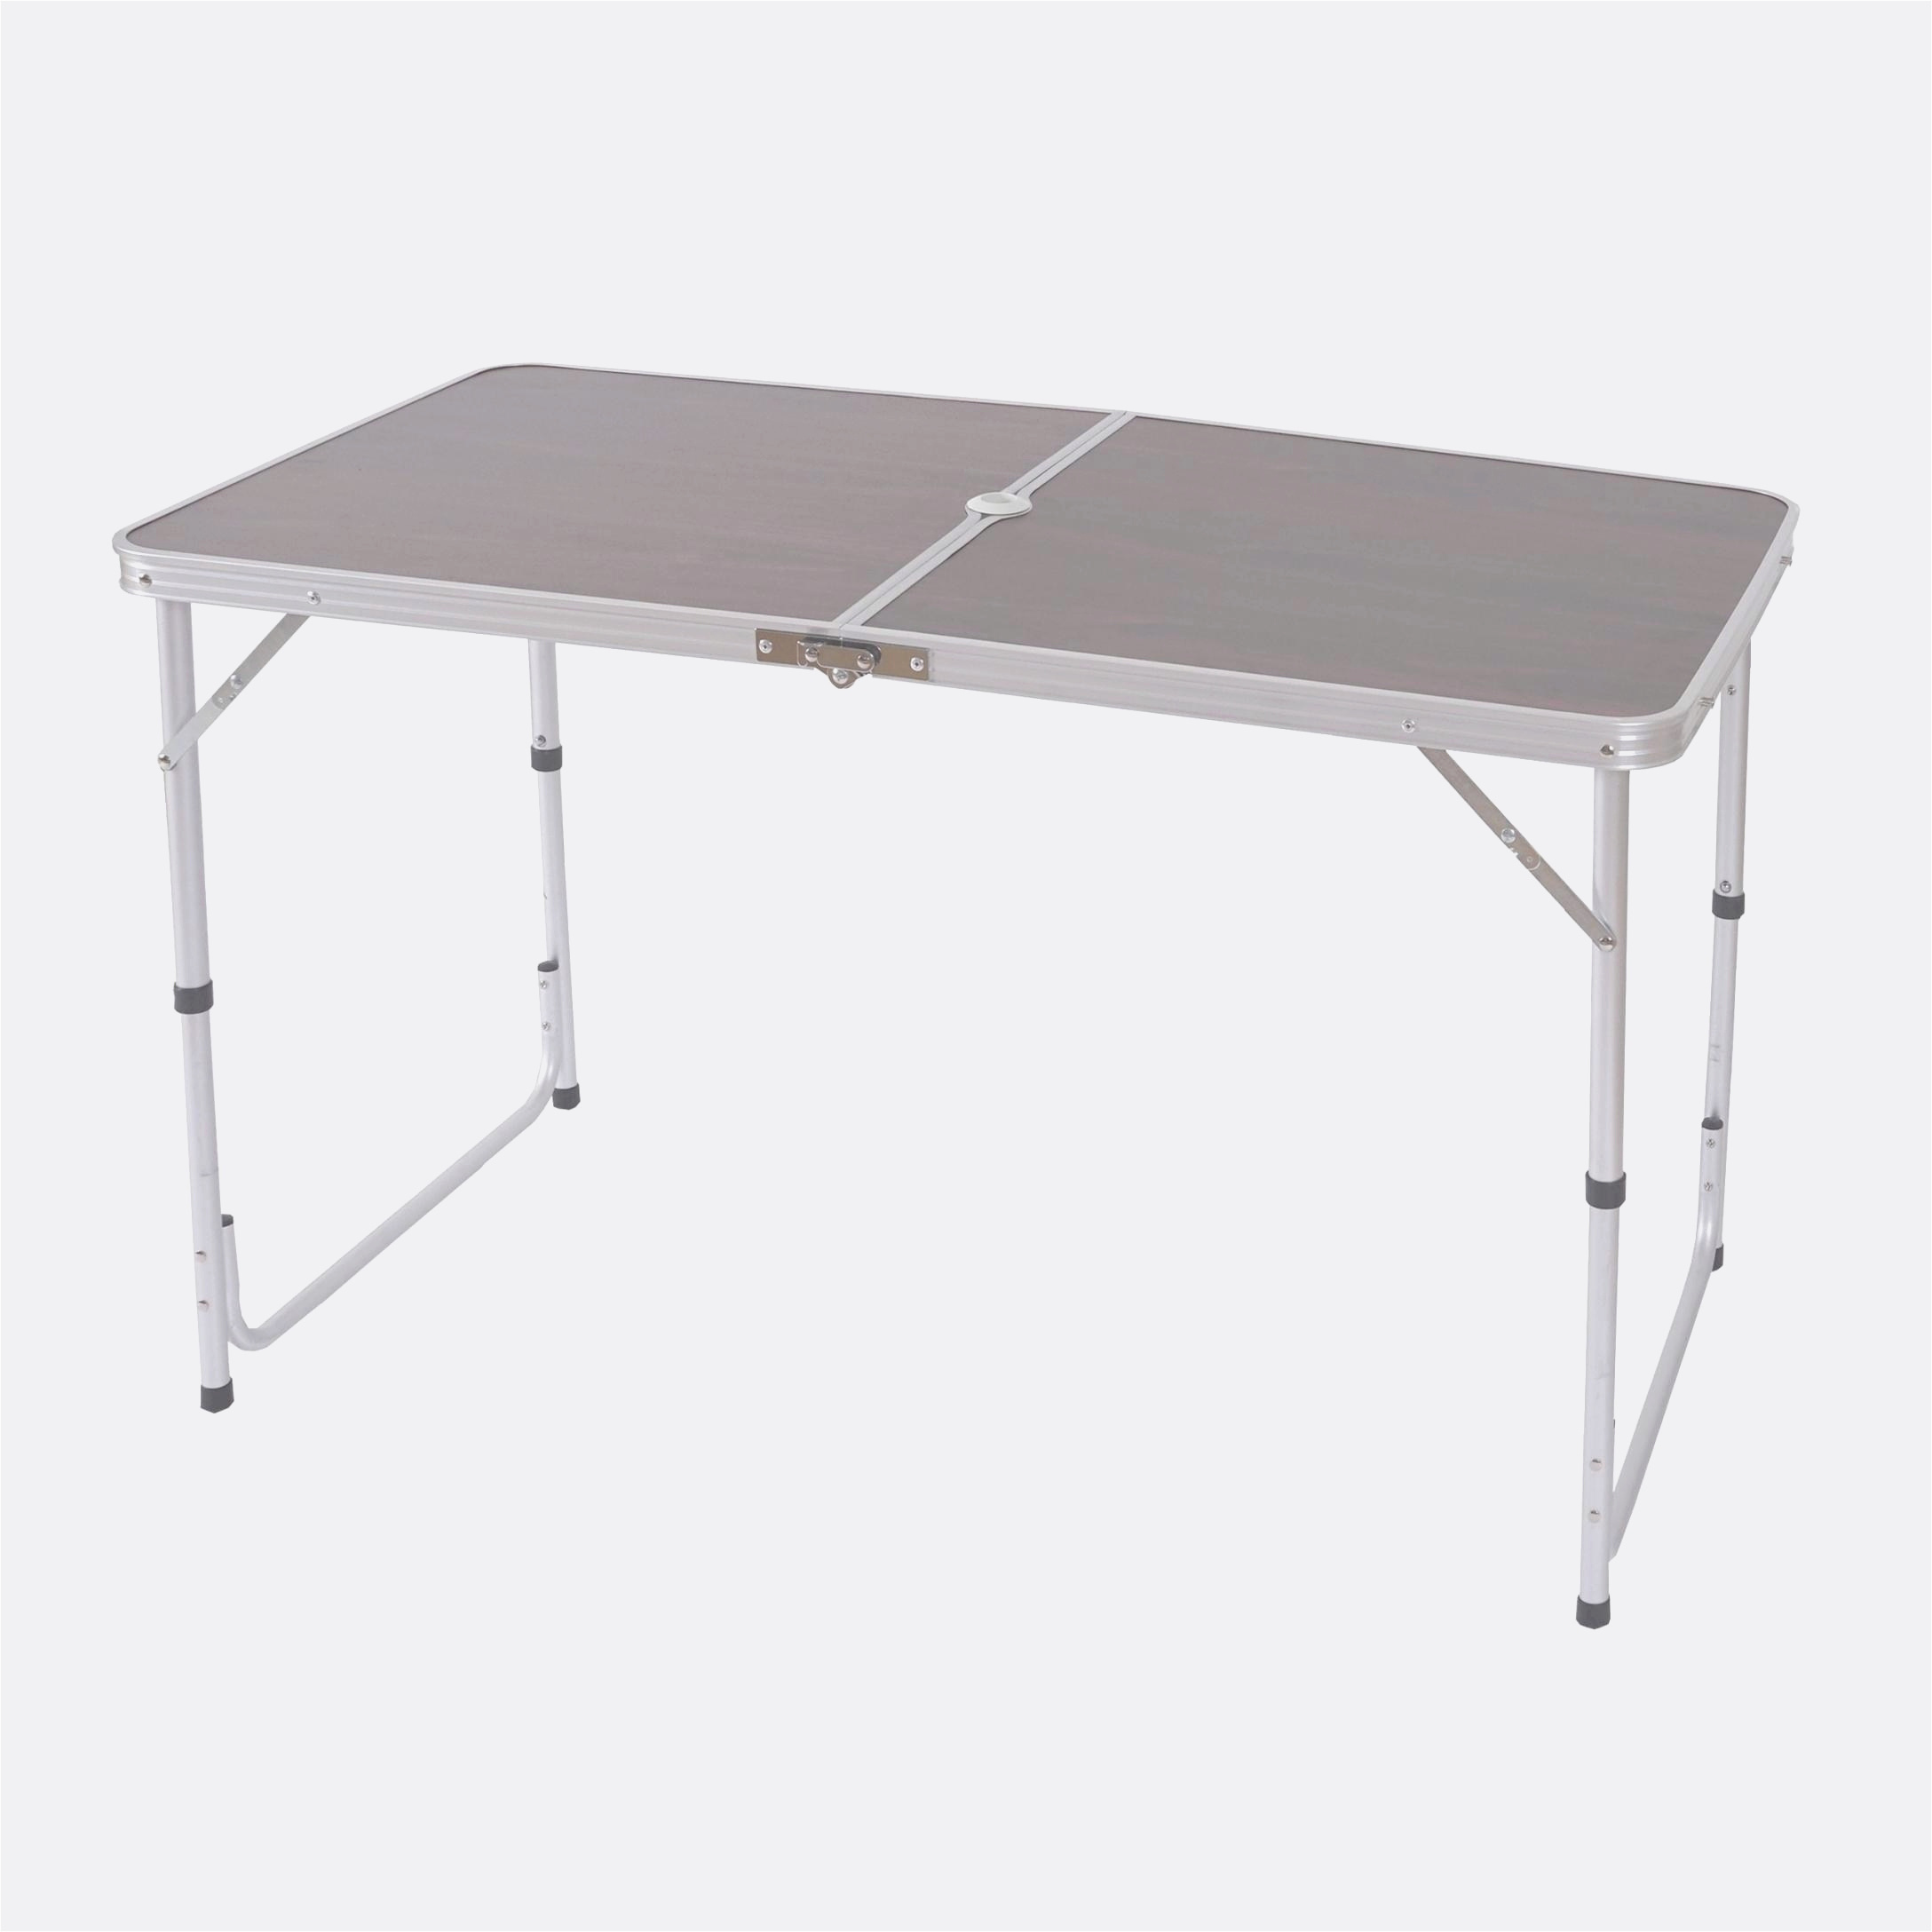 table de massage pliante luxe table de massage pliante carrefour beau resultat superieur 60 of table de massage pliante